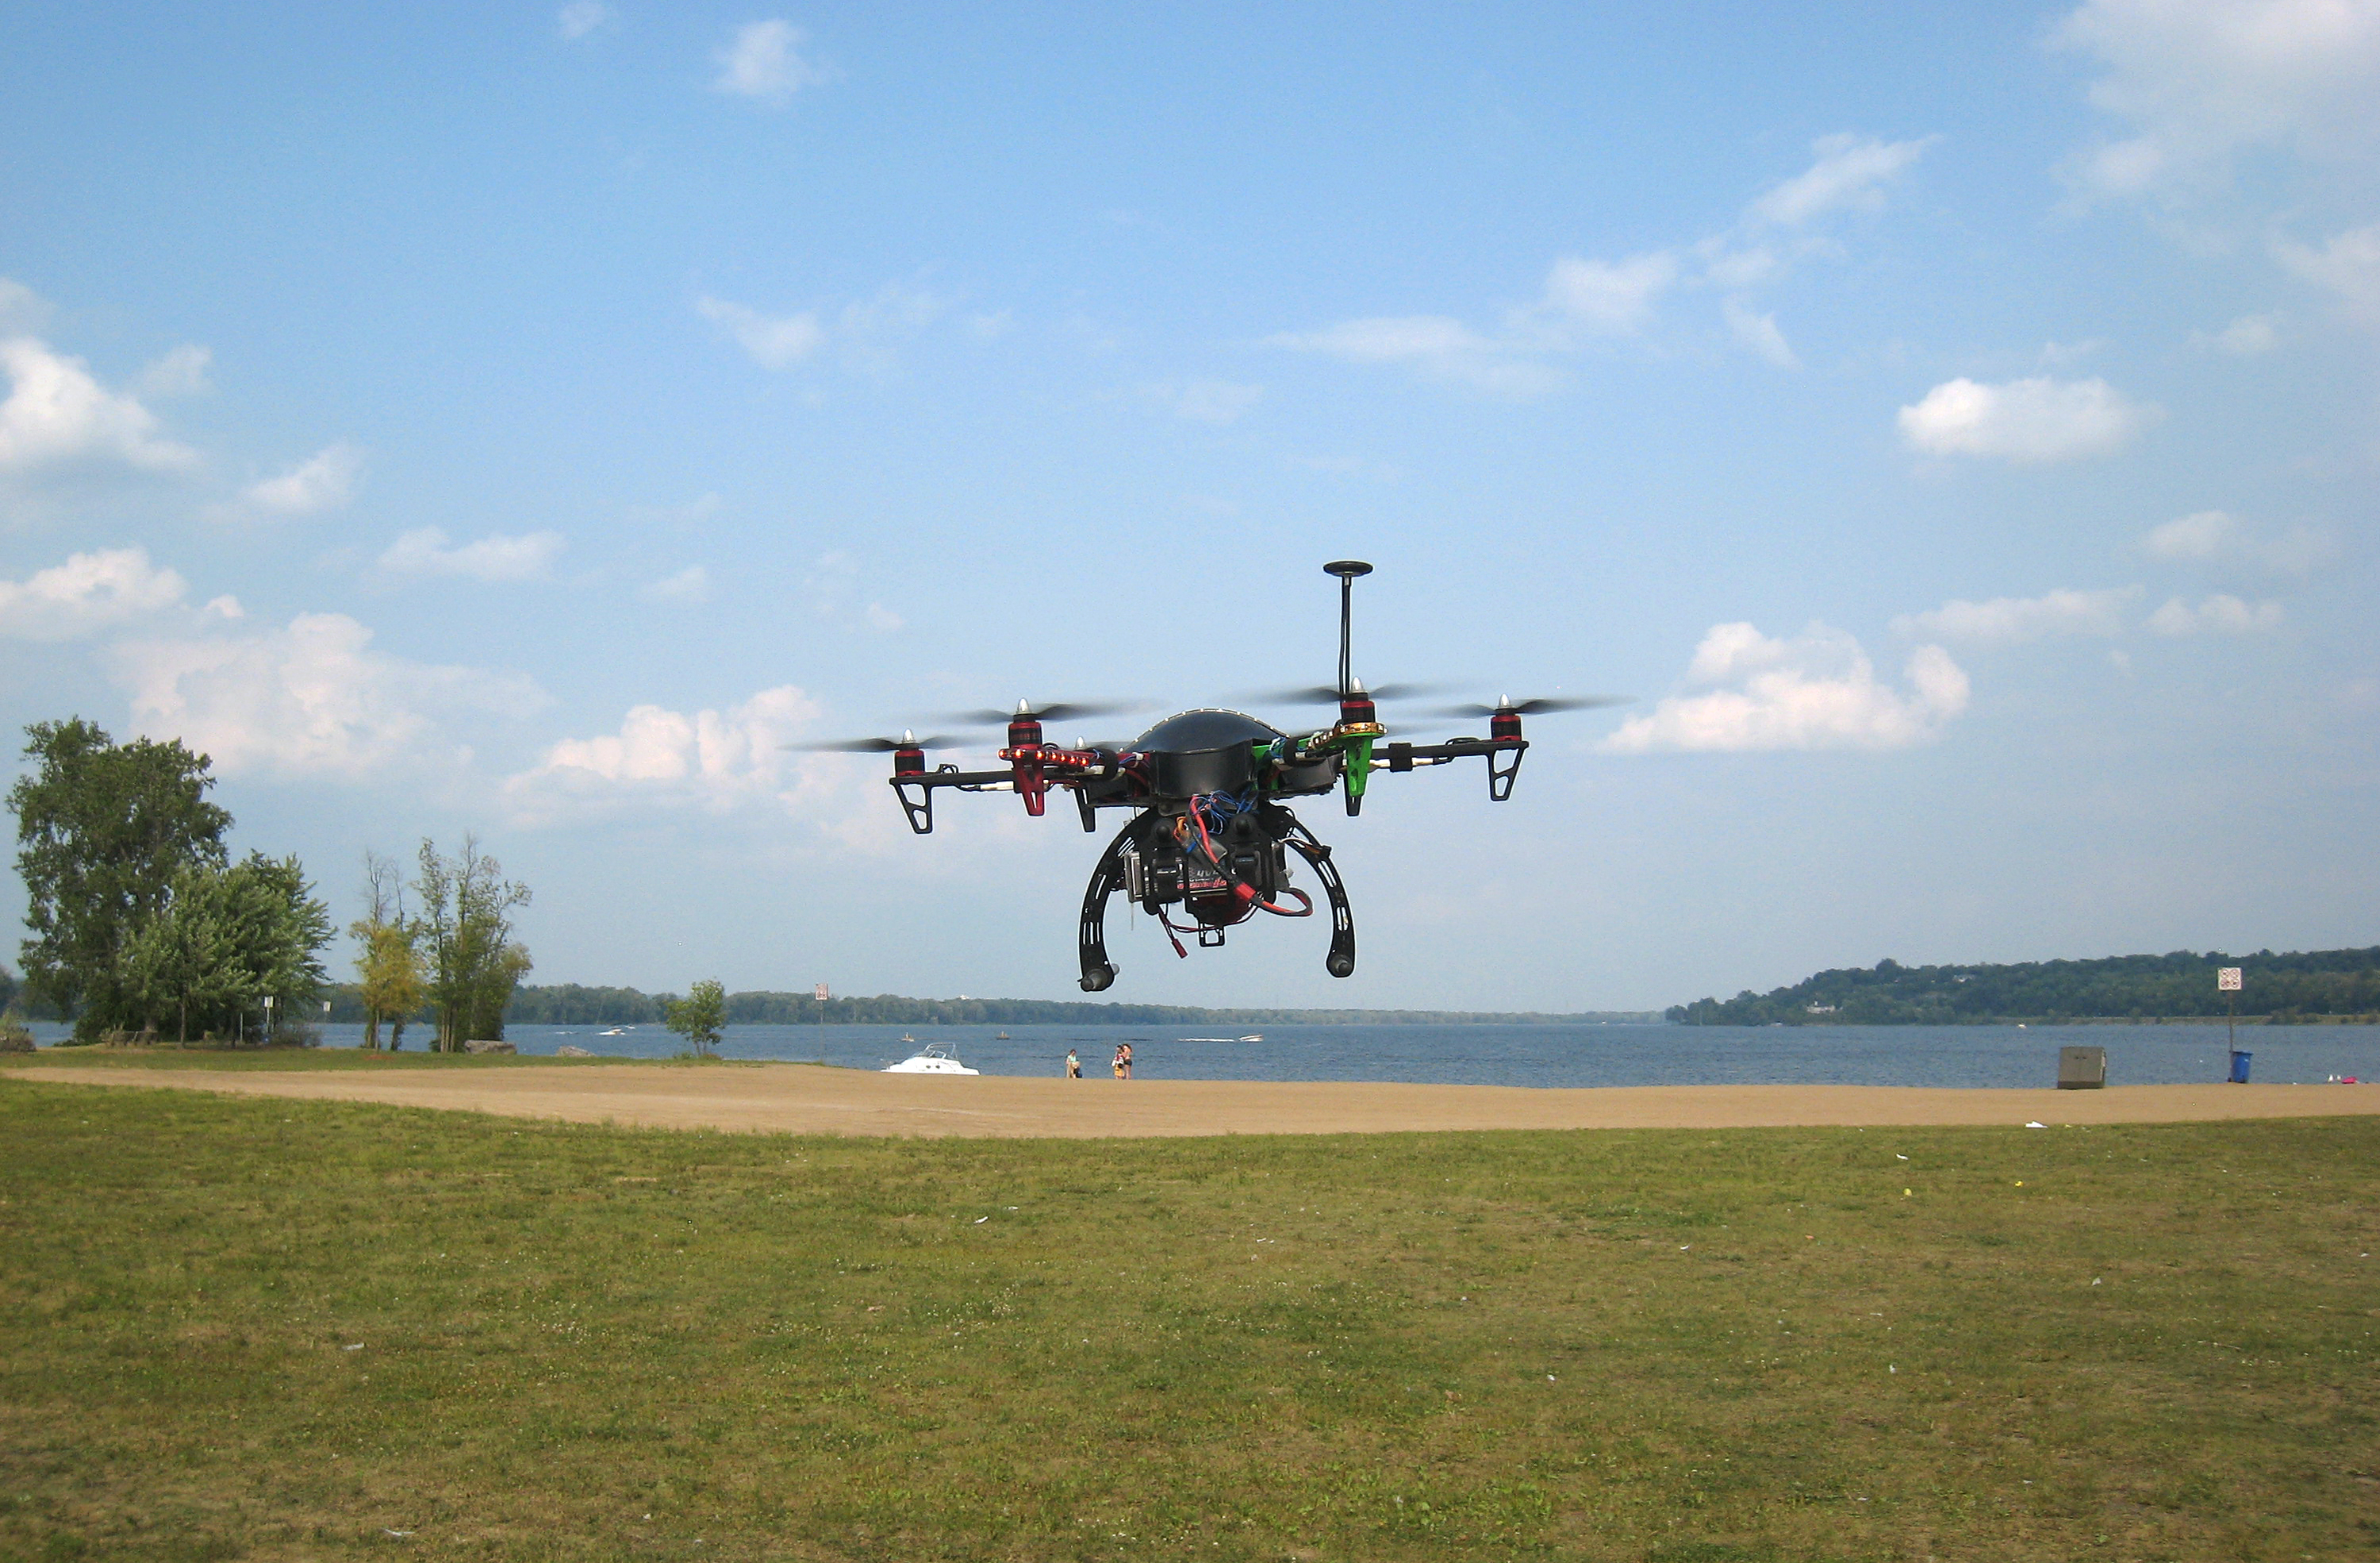 Ask Drone Girl: how do I build a recreational drone park?